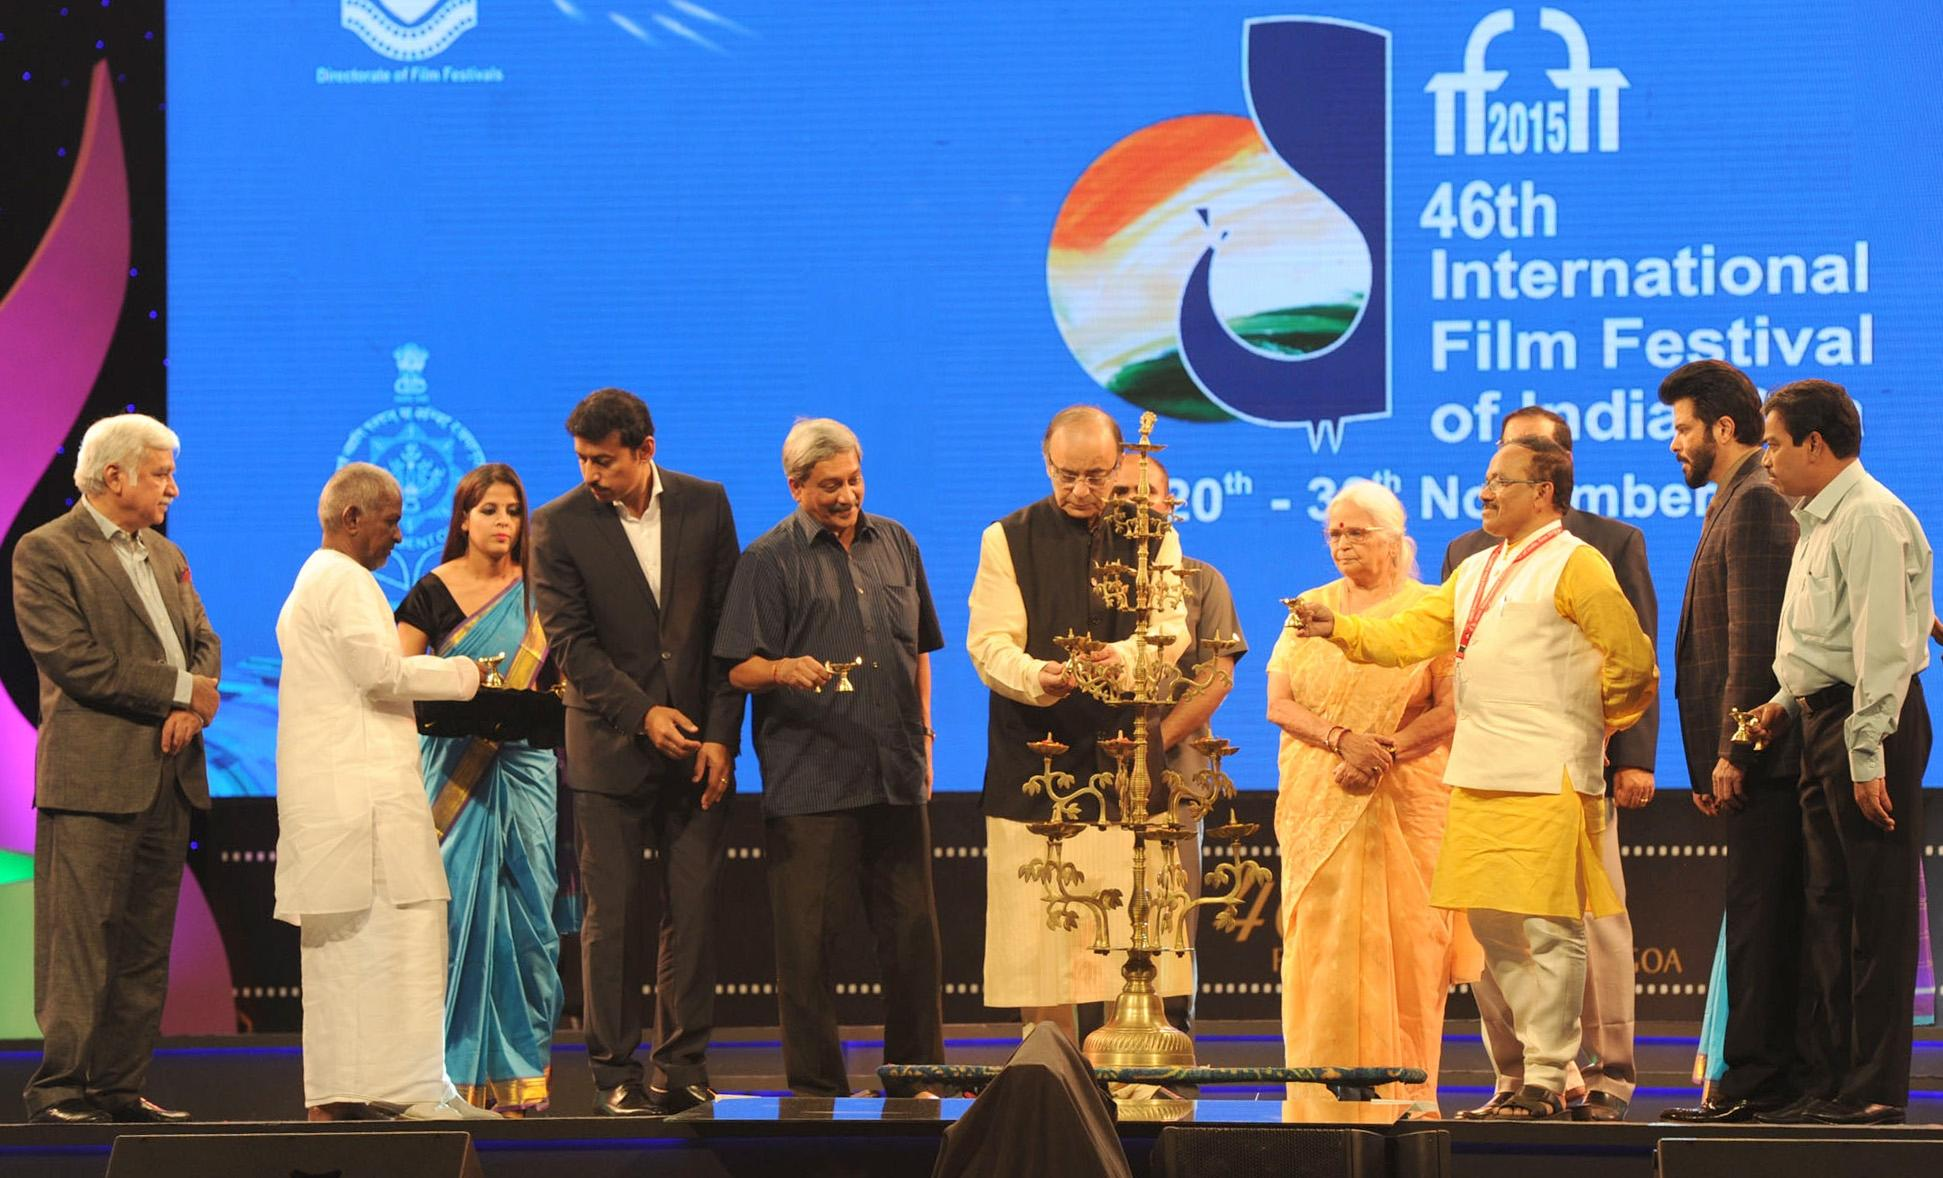 Celebrities at 46th International Film Festival of India - inauguration